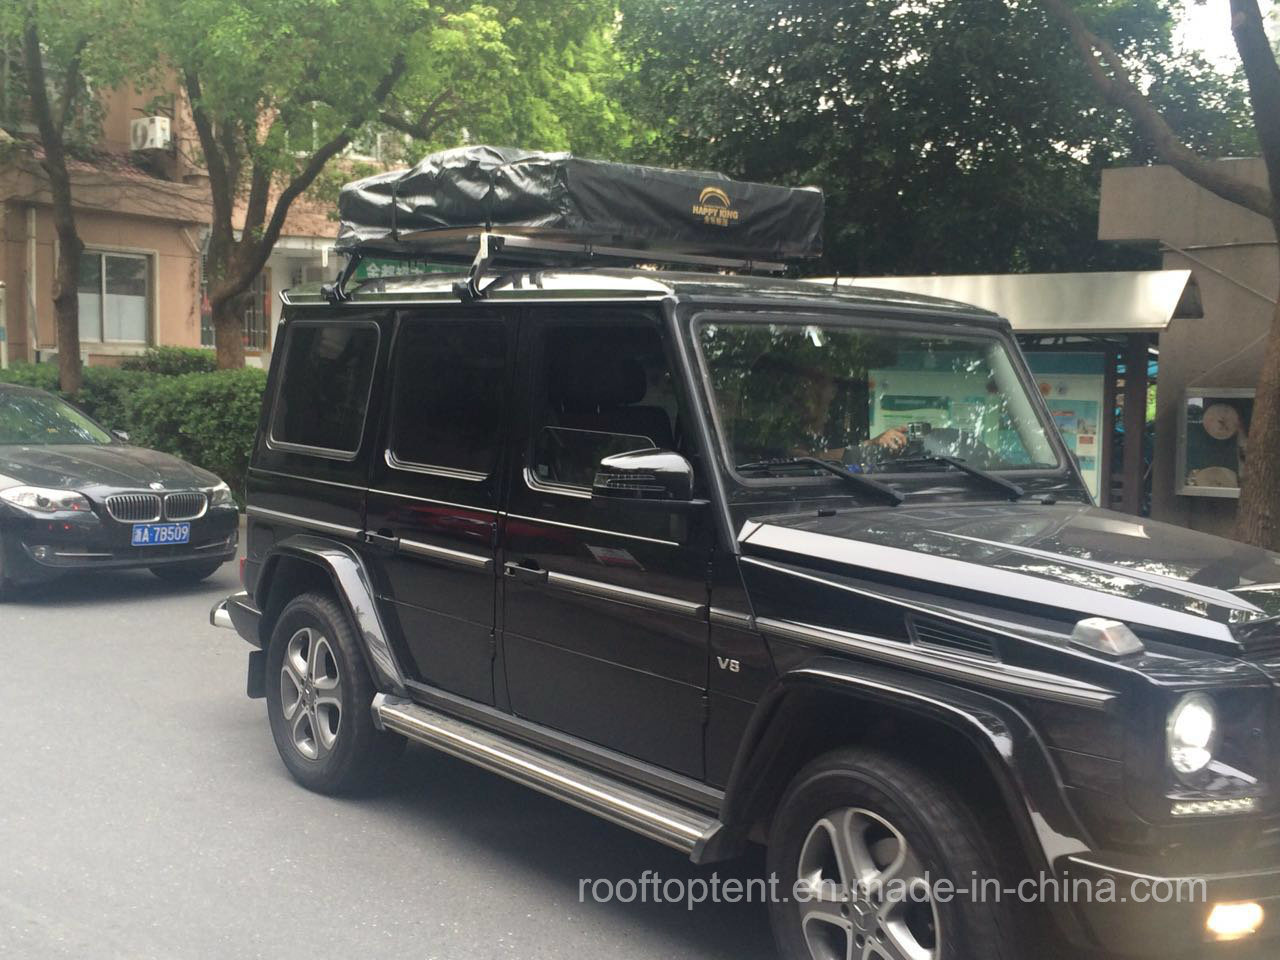 Waterproof 2017 Popular SUV Roof Top Tents for Camping